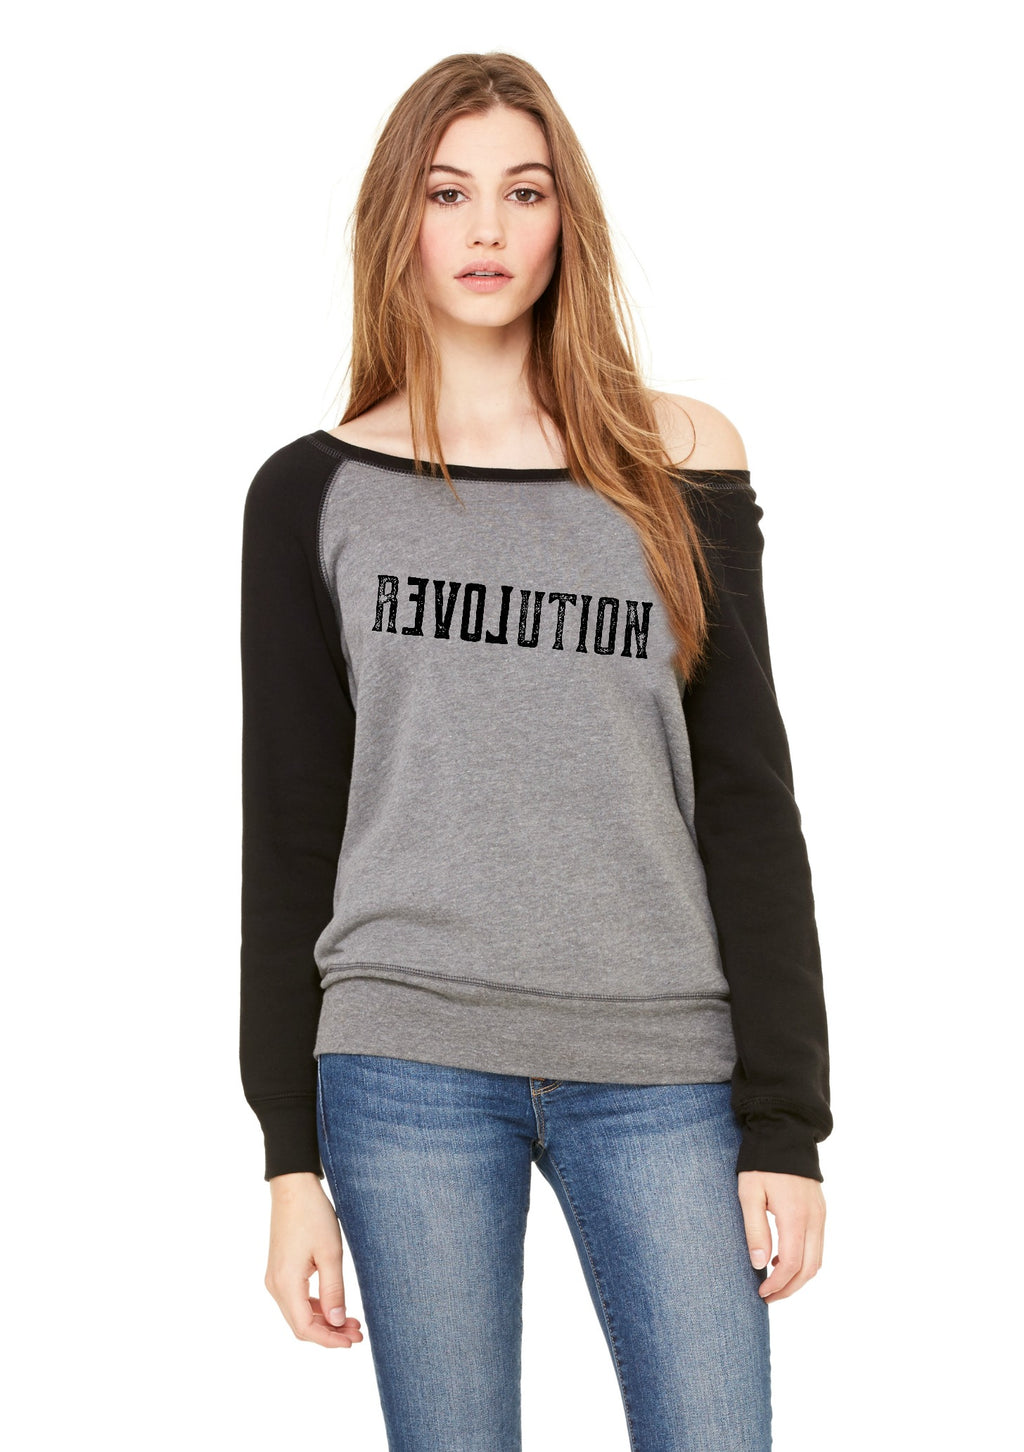 Revolution Ladies Slouchy Sweatshirt